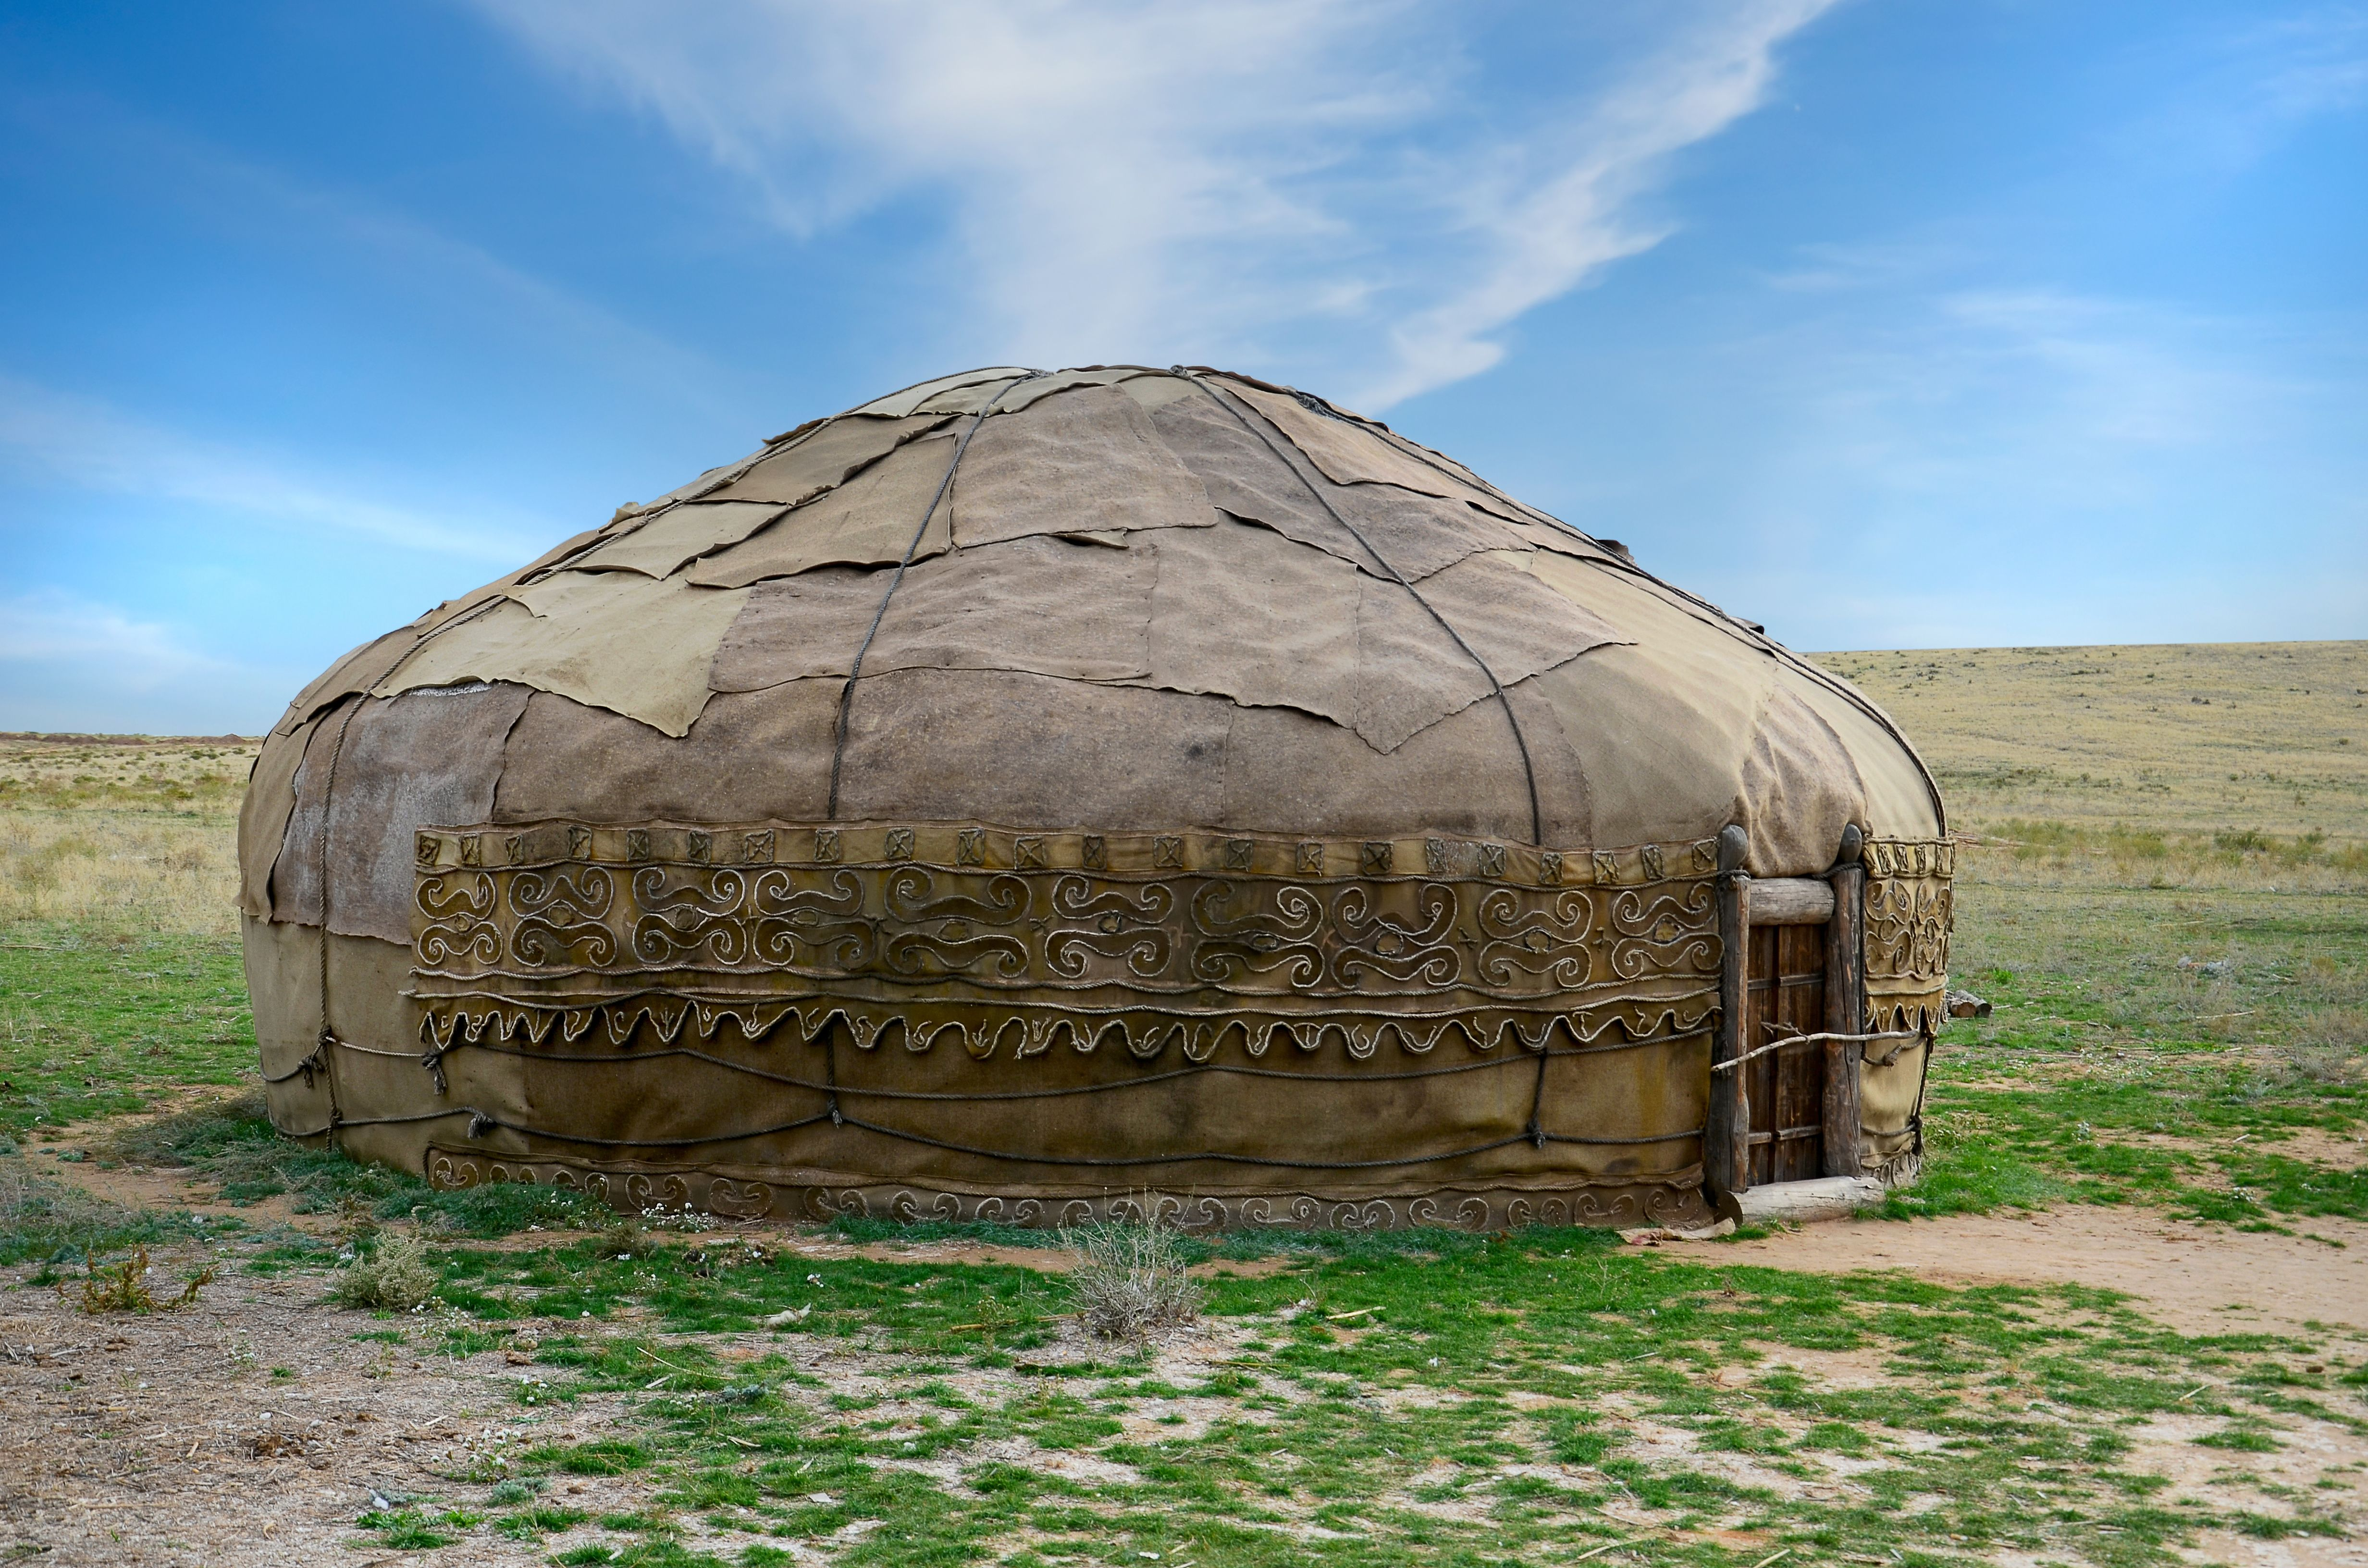 Building a yurt do it yourself yurts traditional and tiny houses building a yurt do it yourself solutioingenieria Images